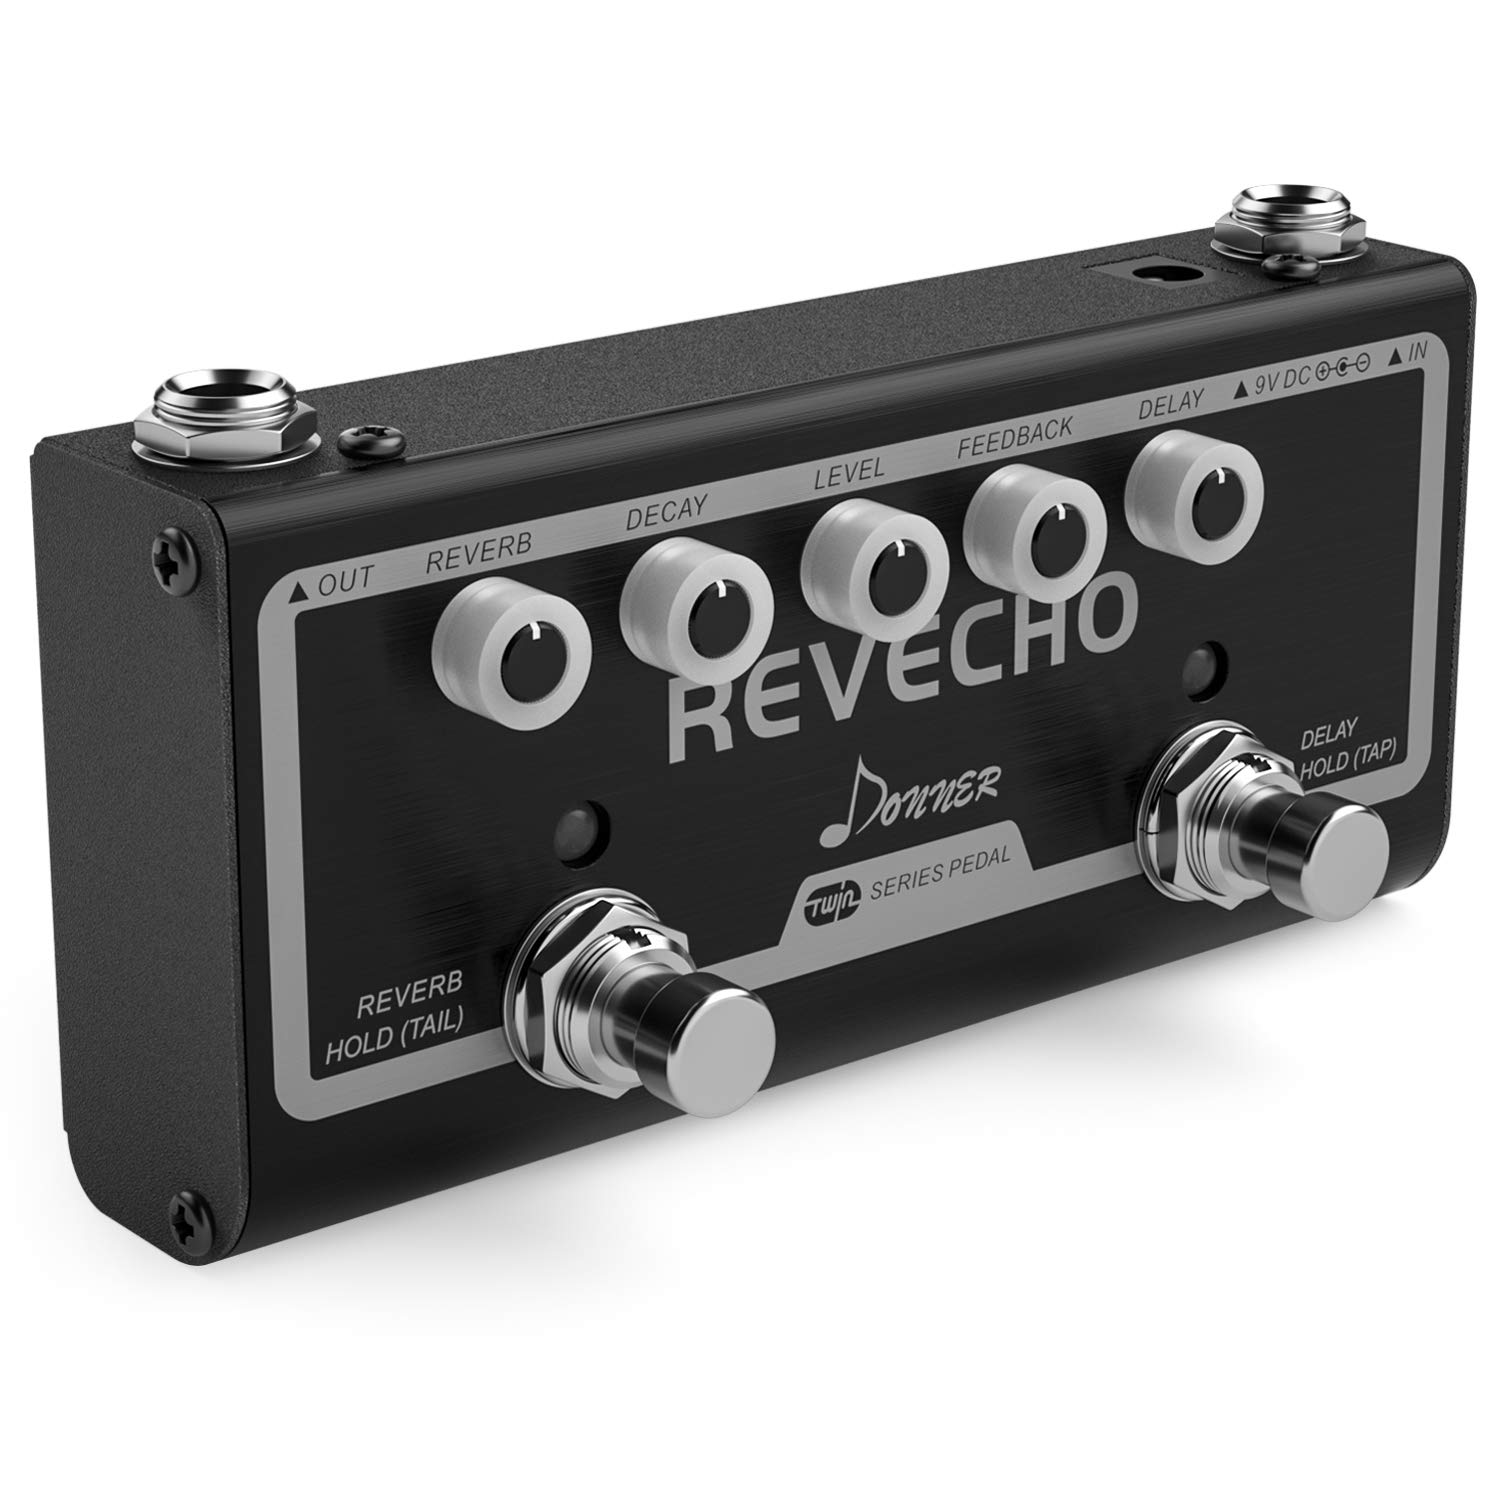 Donner Revecho Guitar Effect Pedal 2 Mode Delay and Reverb Effects Pedal by Donner